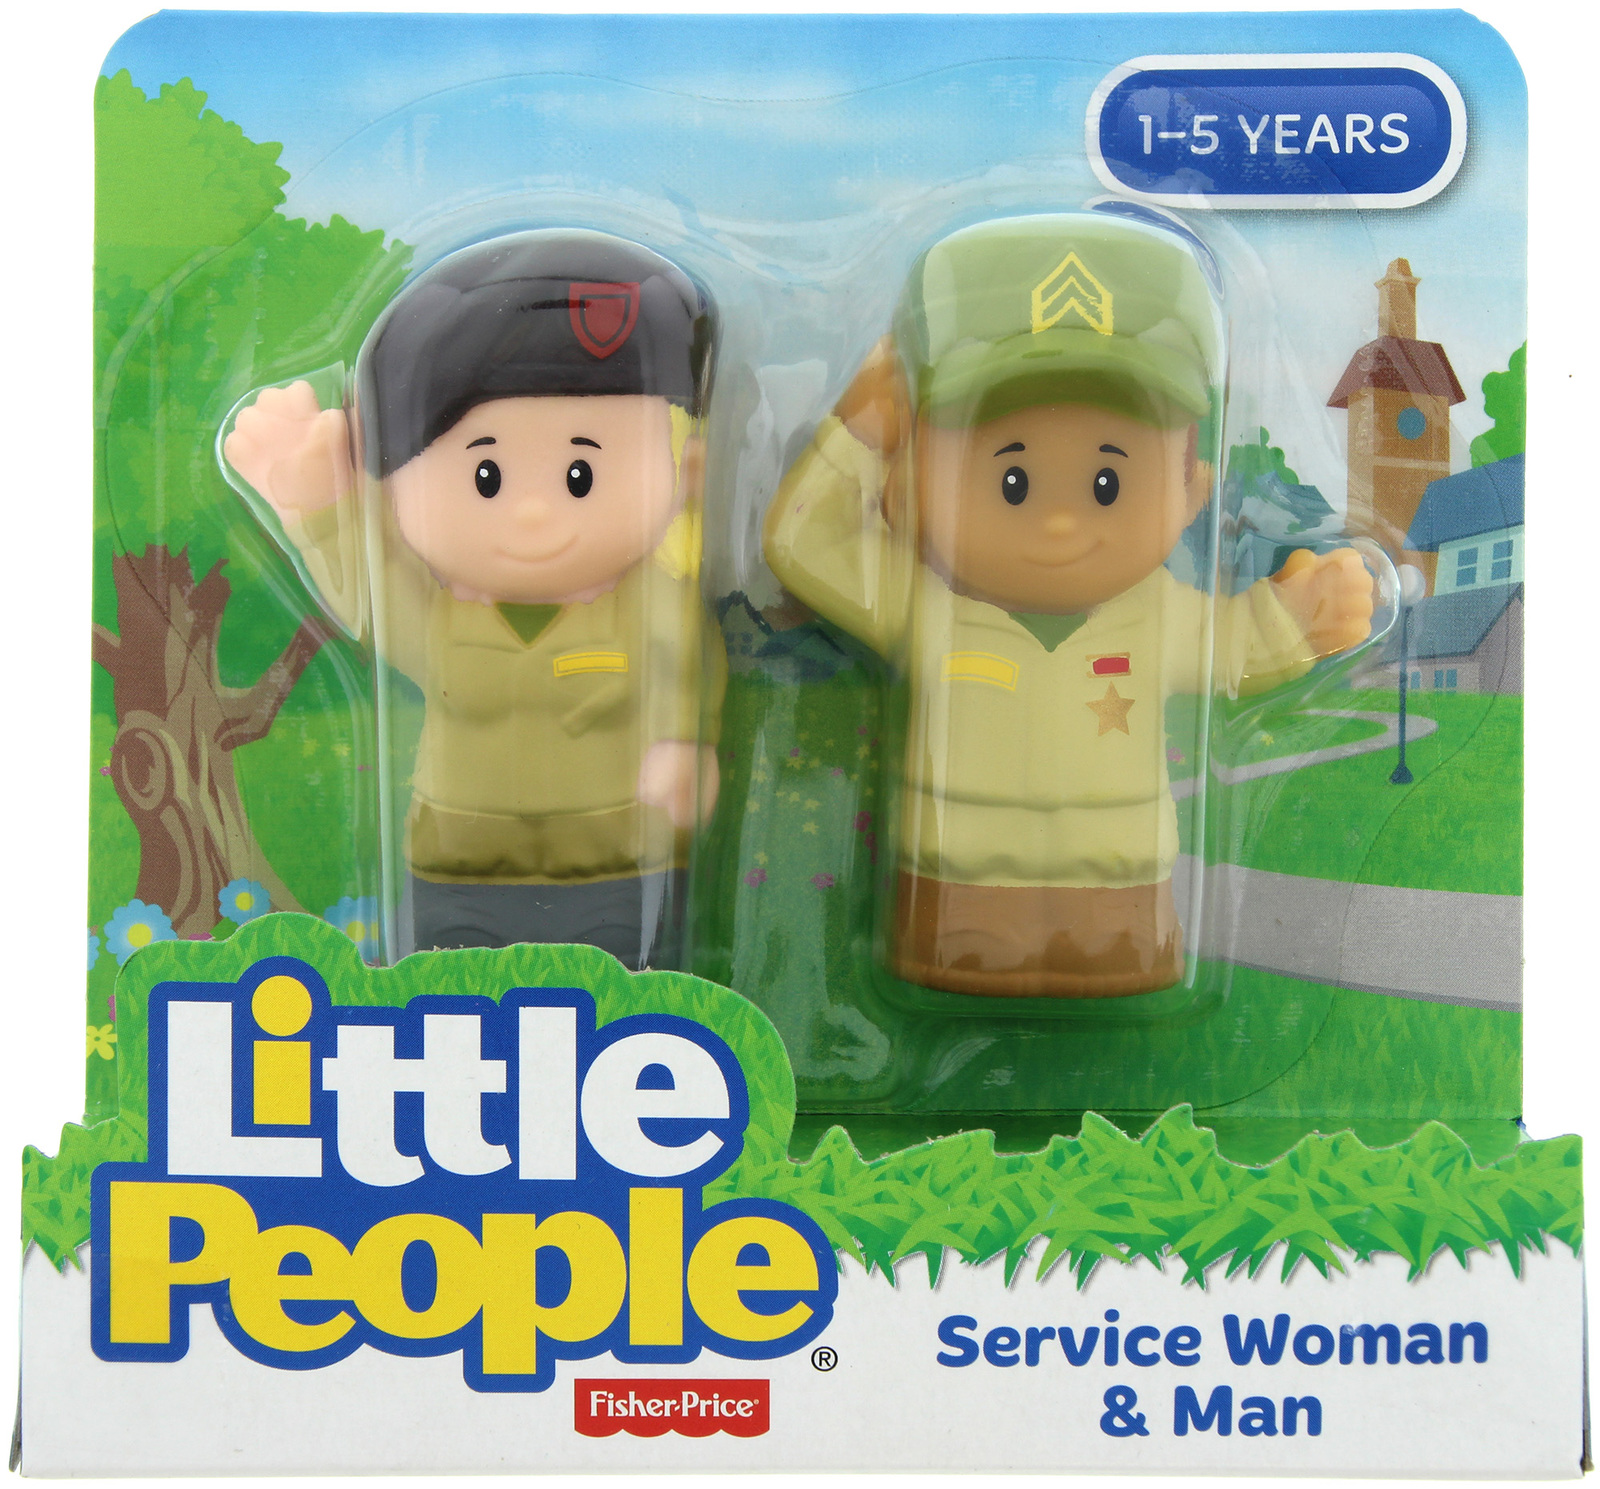 Fisher-Price: Little People - Service Woman & Man image